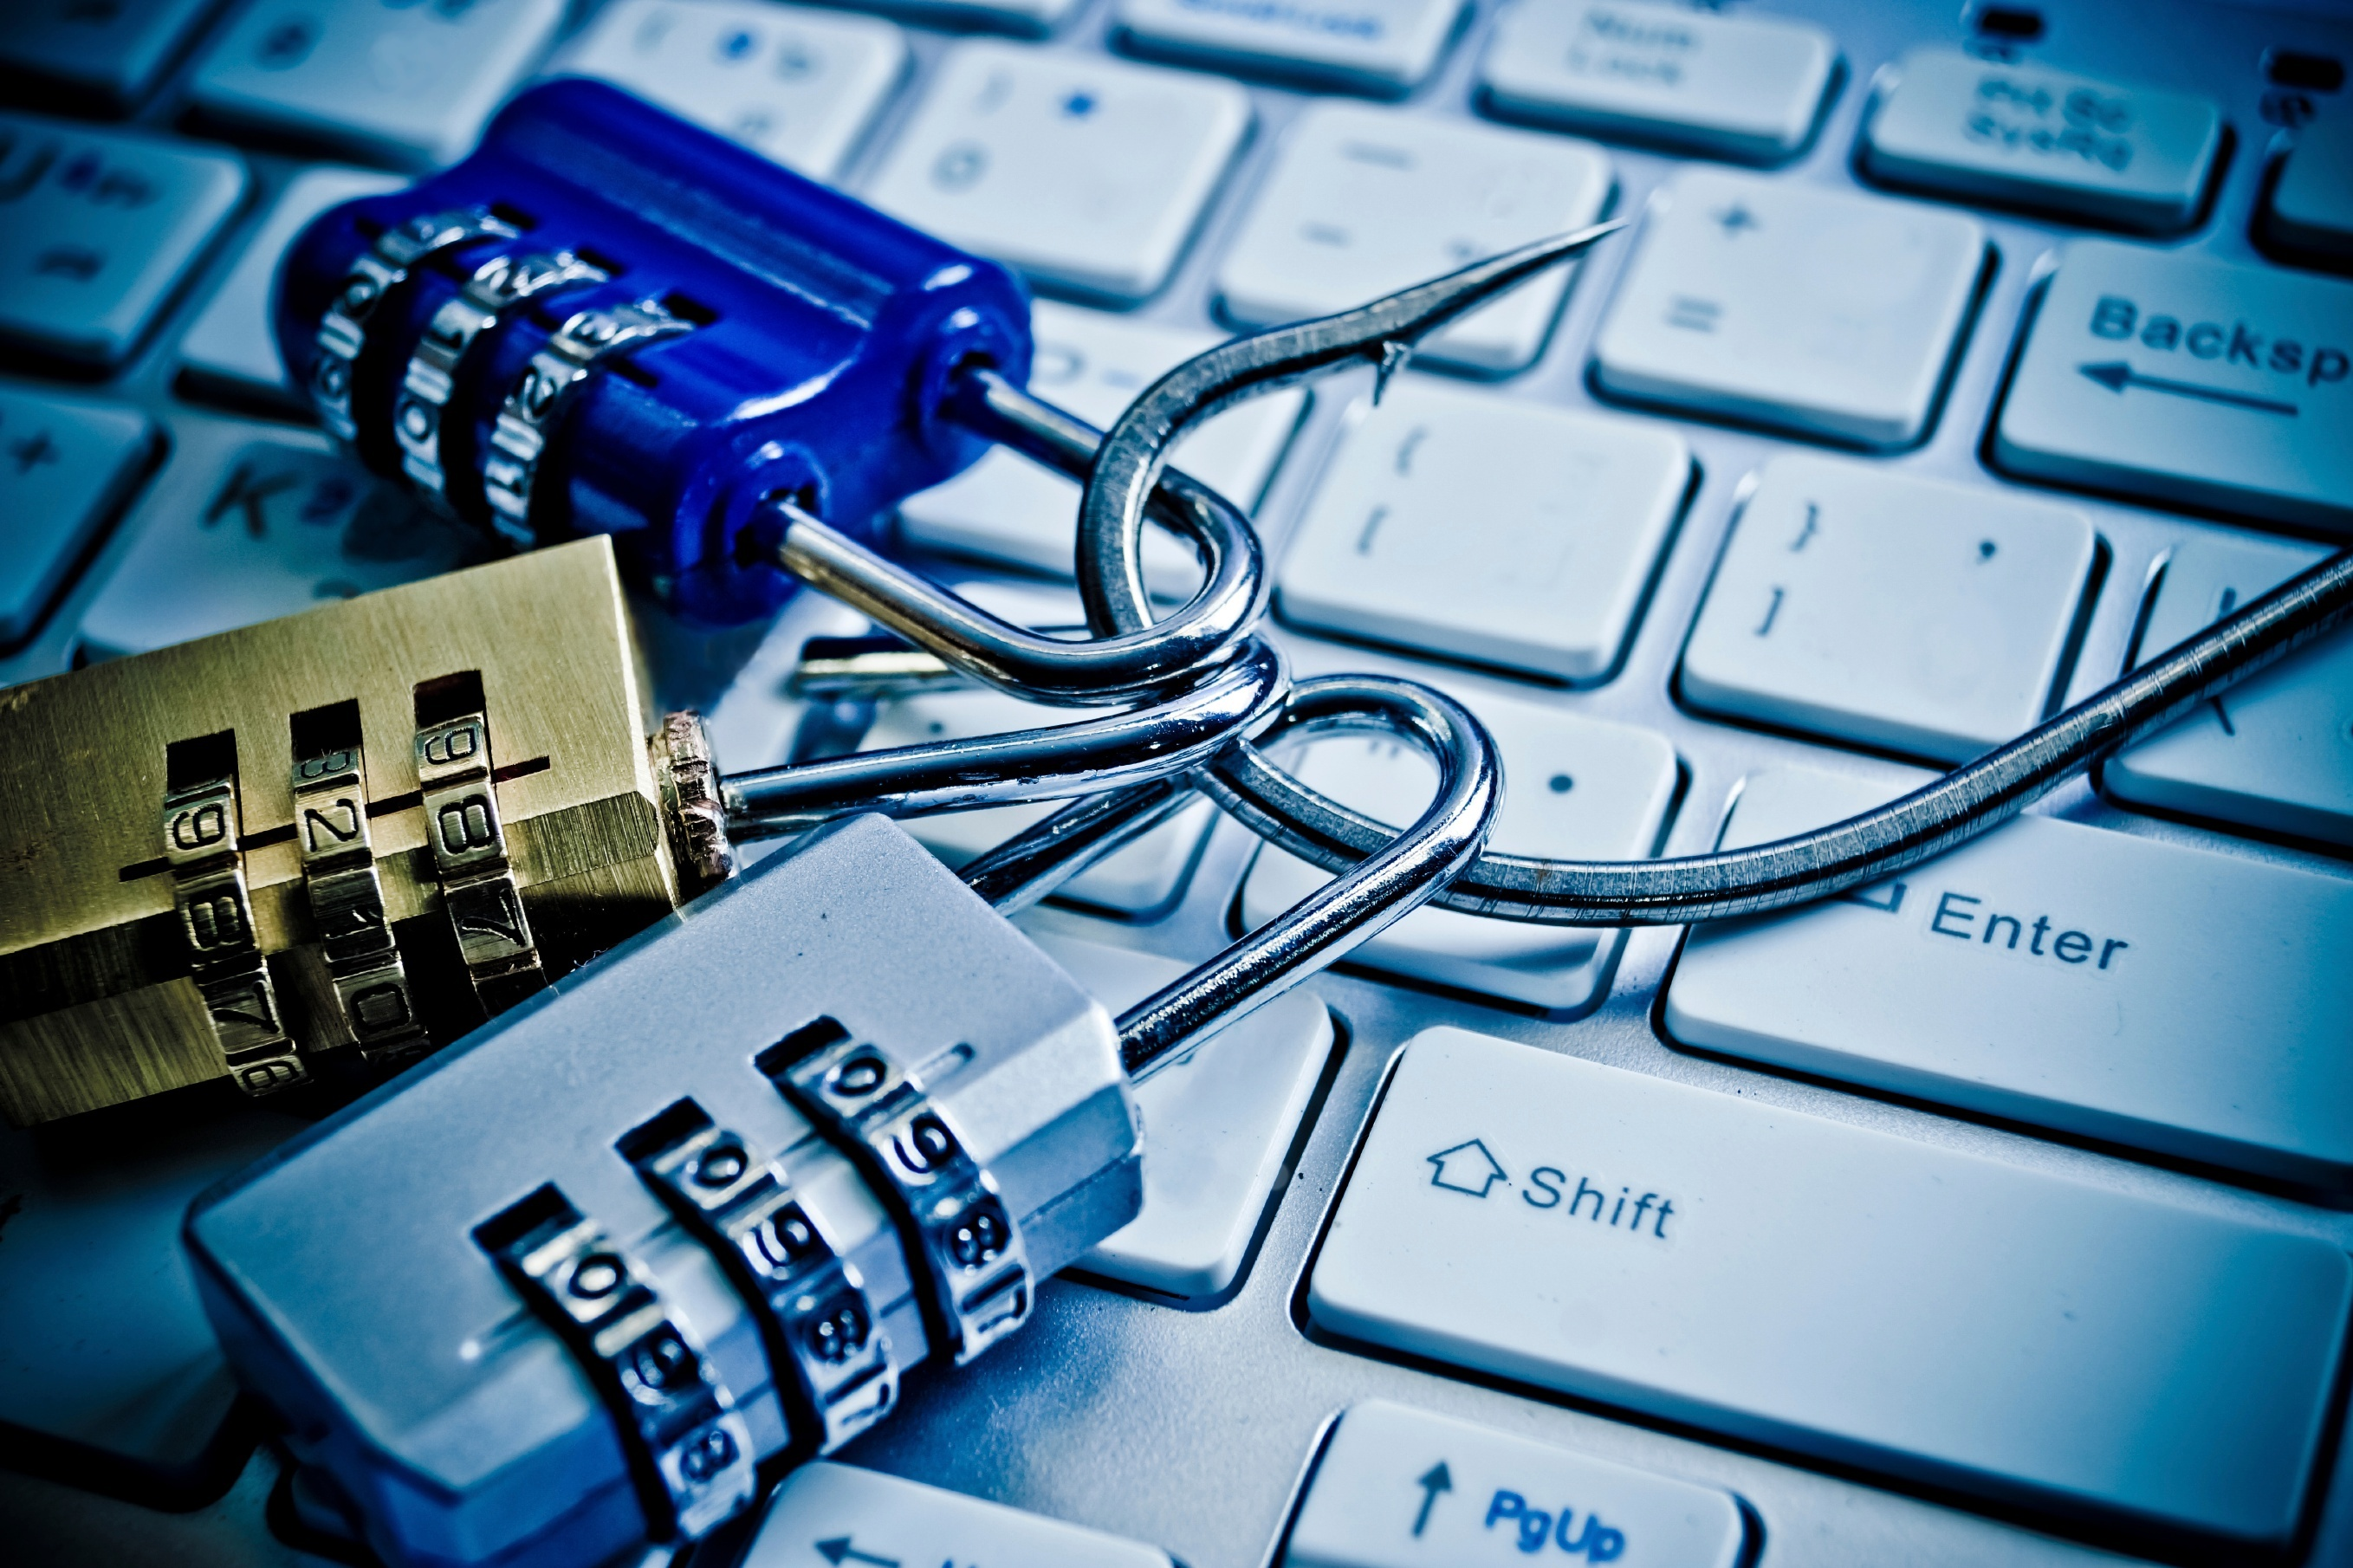 3 ways to protect against ransomware